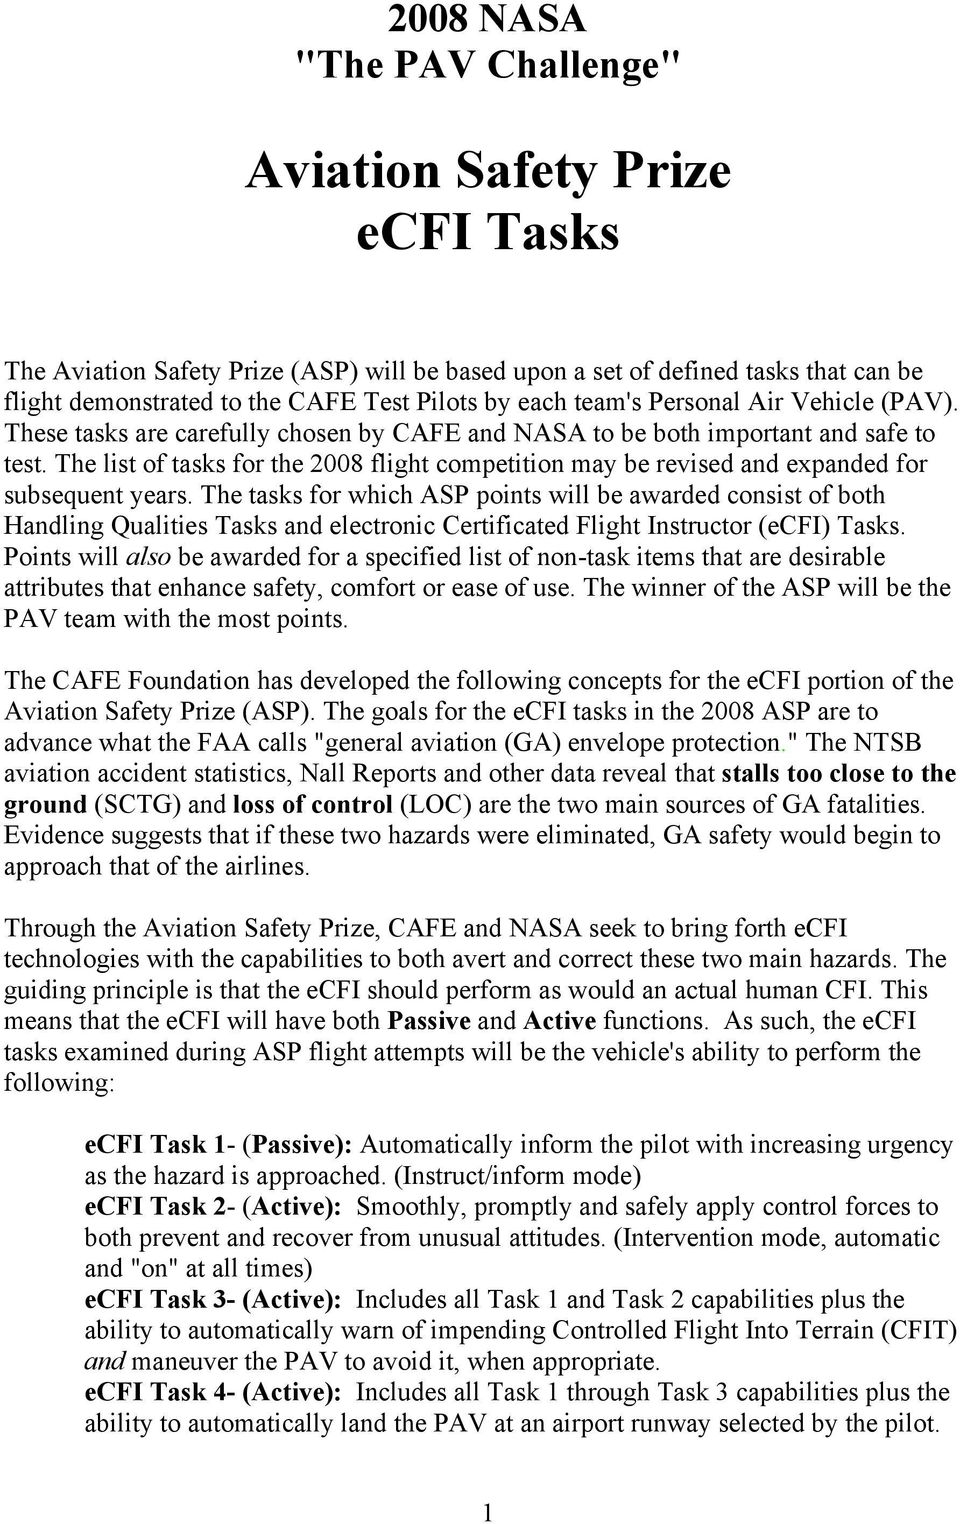 The list of tasks for the 2008 flight competition may be revised and expanded for subsequent years.